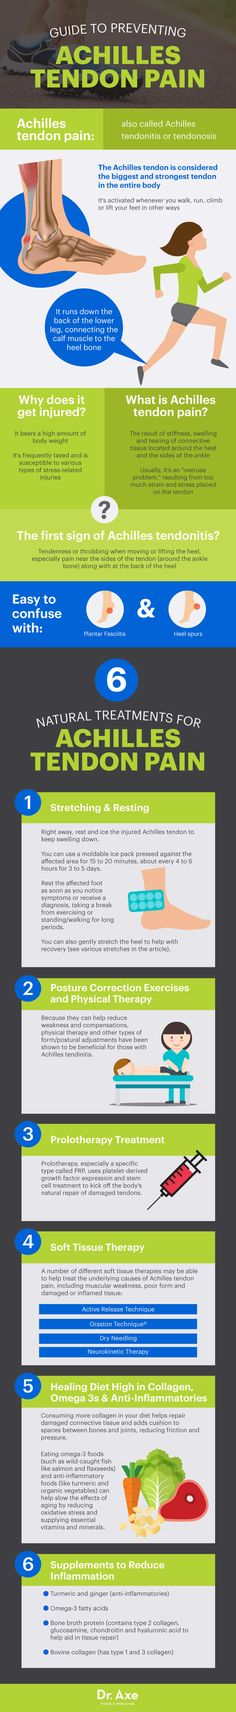 Achilles tendon pain  http://www.draxe.com #health #holistic #natural